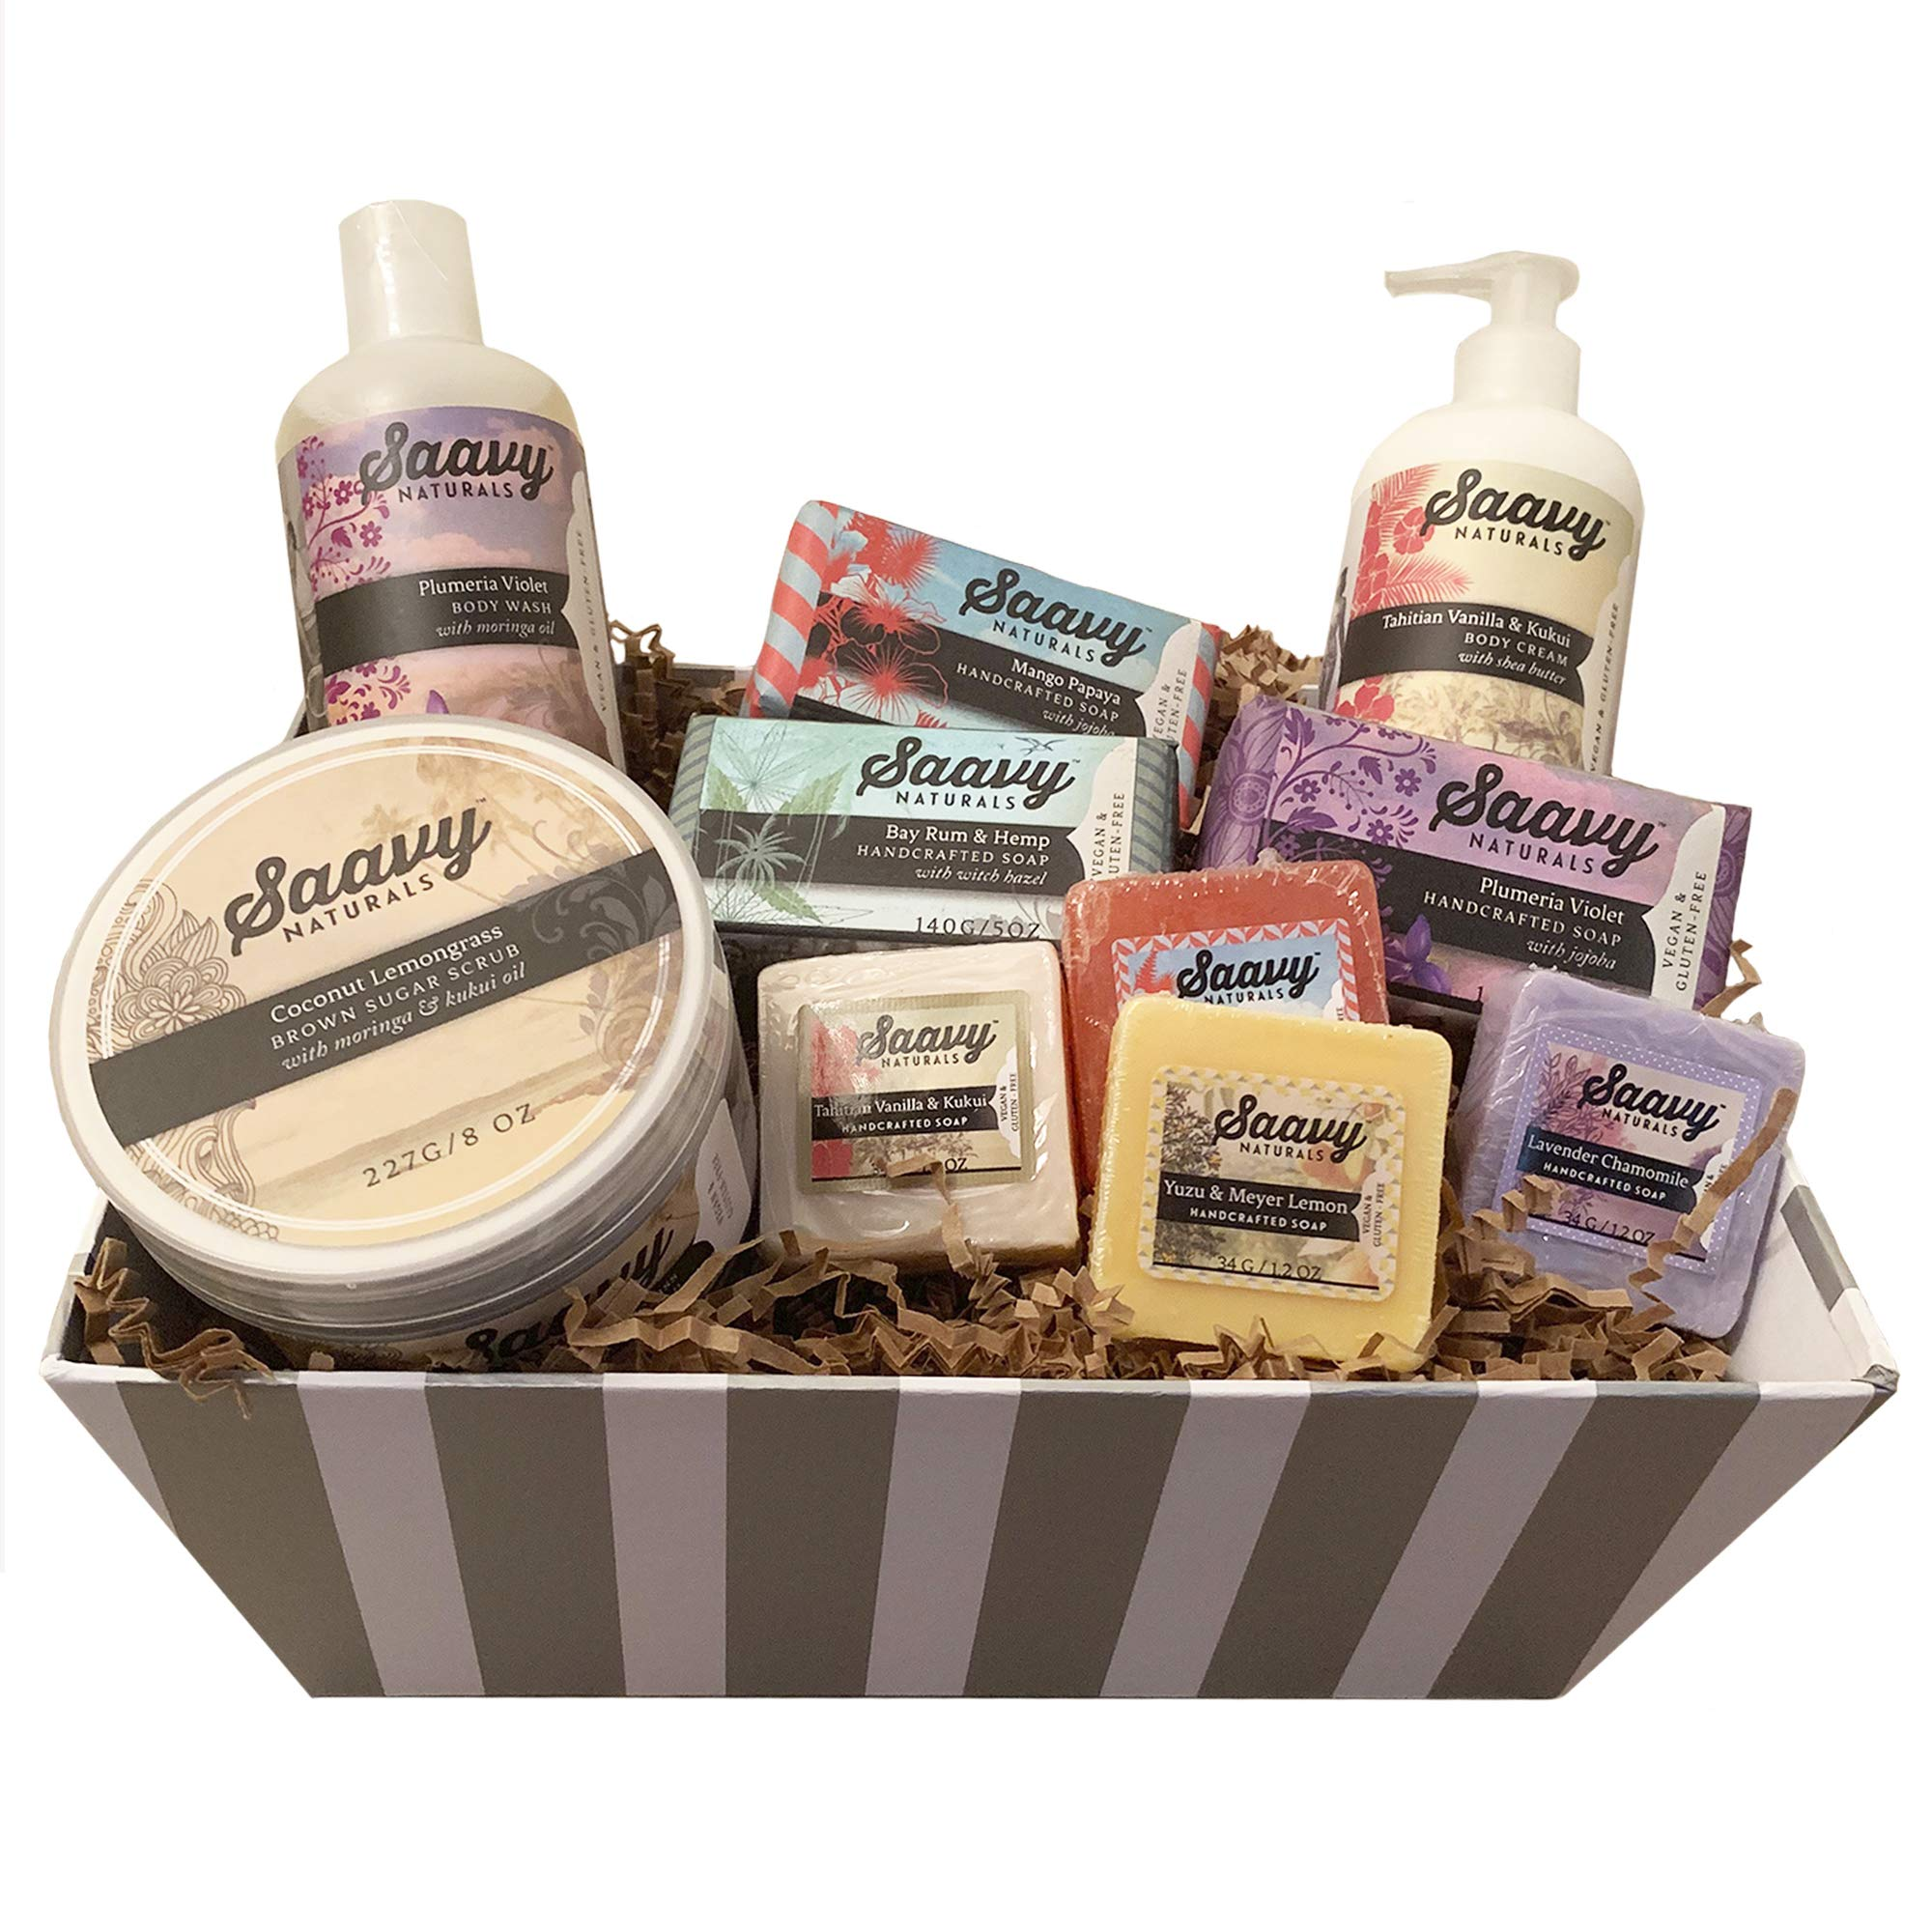 Spa Gift Baskets for Women | Gluten-Free Vegan 10 Piece Gift Set Includes Organic Body Bars, Hand Soap, Moisturizing Cream, Body Wash, Sugar Scrub by Saavy Naturals